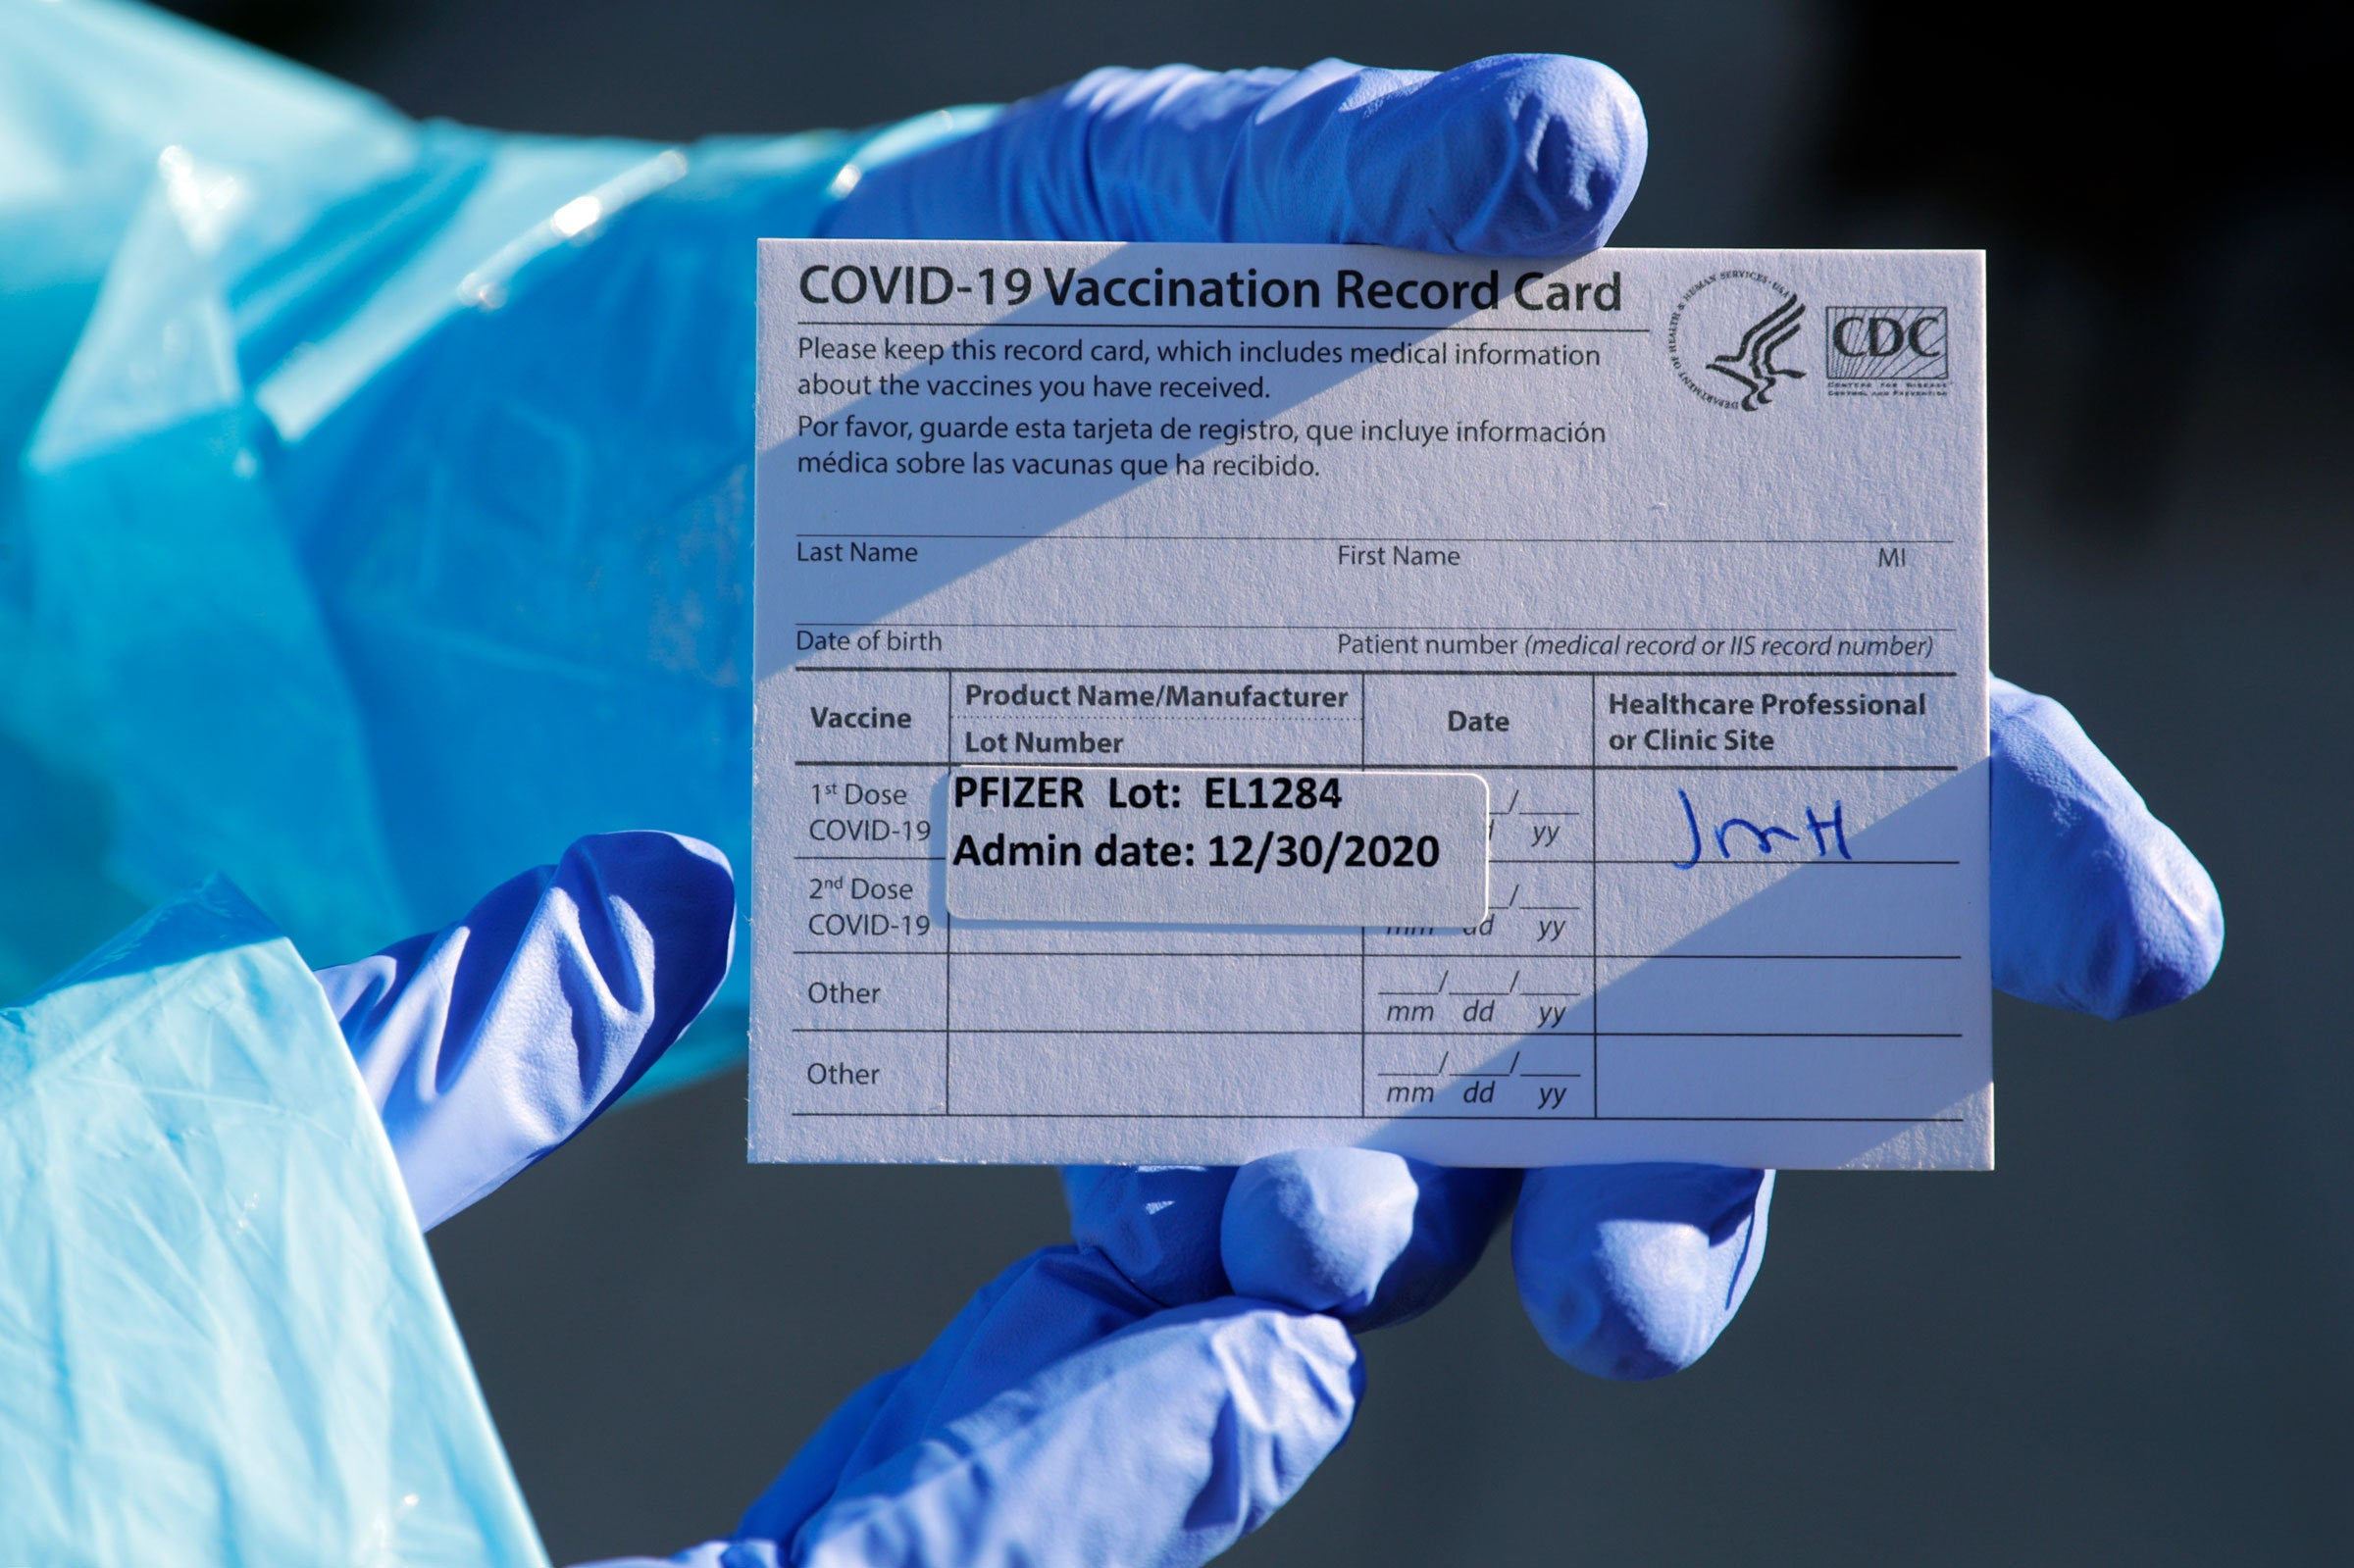 Covid-19 Vaccine Passports Are Coming. What Will That Mean?